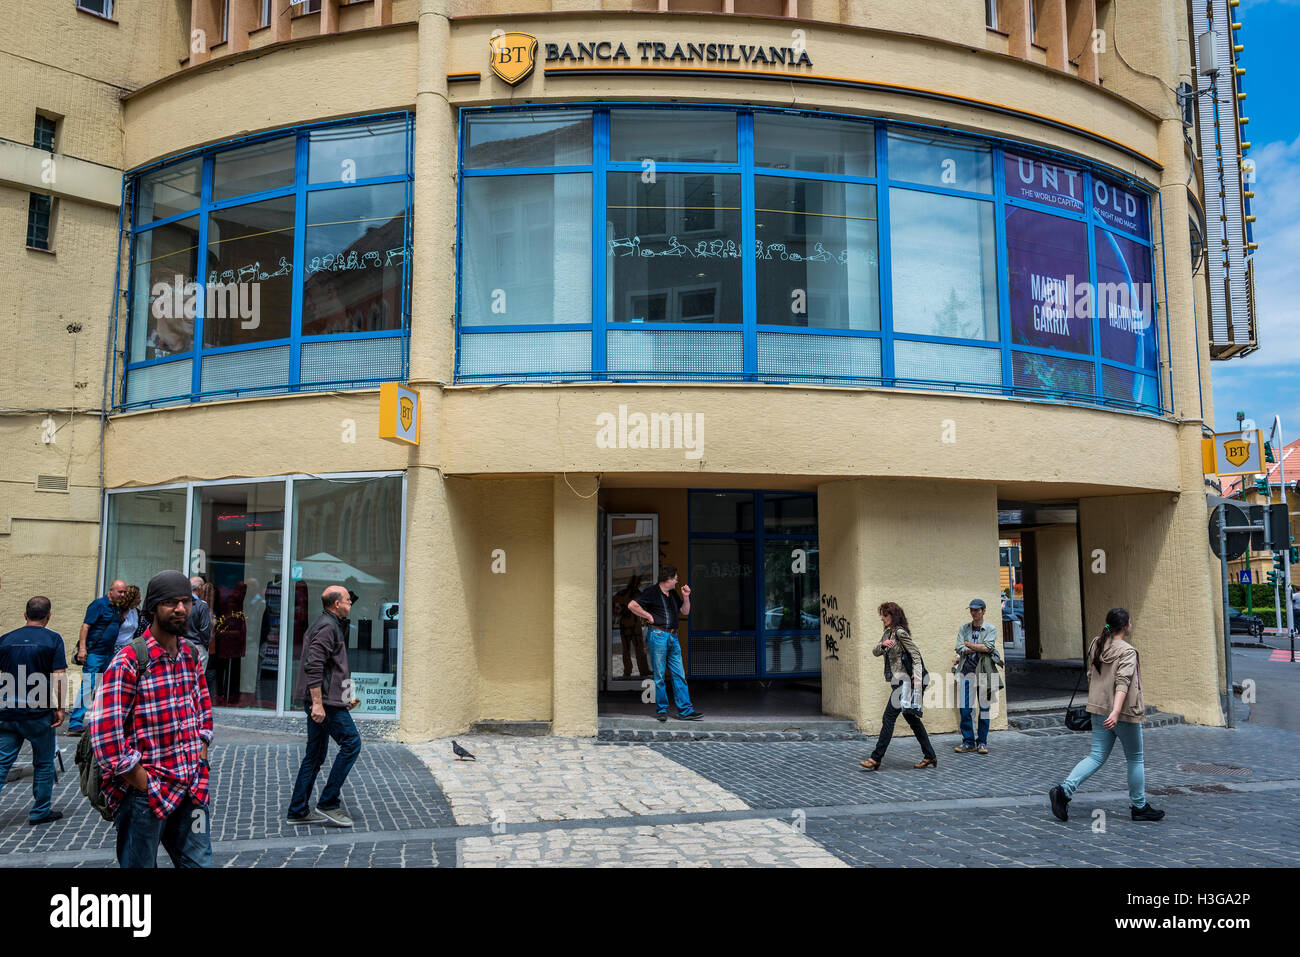 Banca Transilvania office at Republic Street, main pedestrian thoroughfare full of shops and restaurants in Brasov, - Stock Image